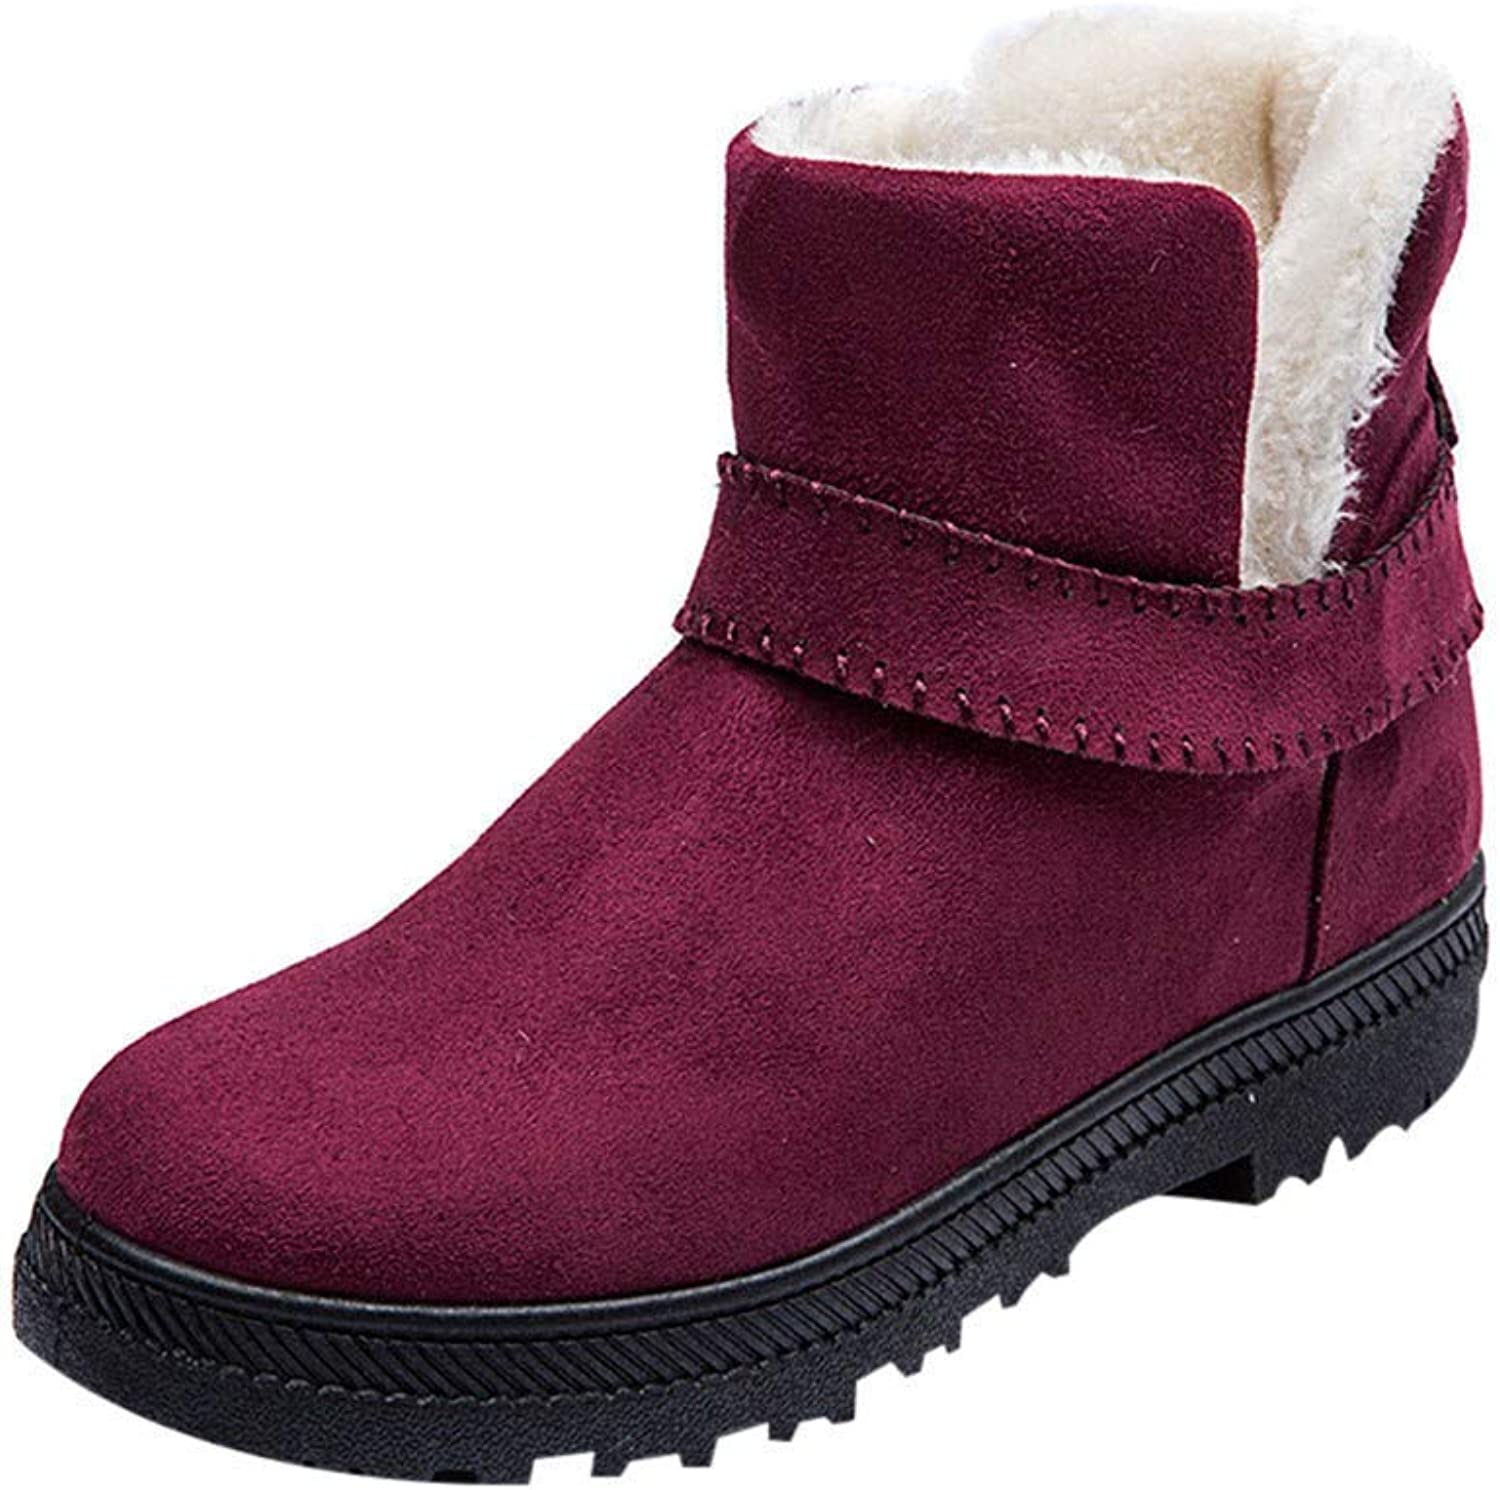 JaHGDU Women Fashion Solid Warm Winter Flat Snow Short Boots Leisure Elegant Cosy Wild Tight Super Casual Round Toe shoes Quality for Womens